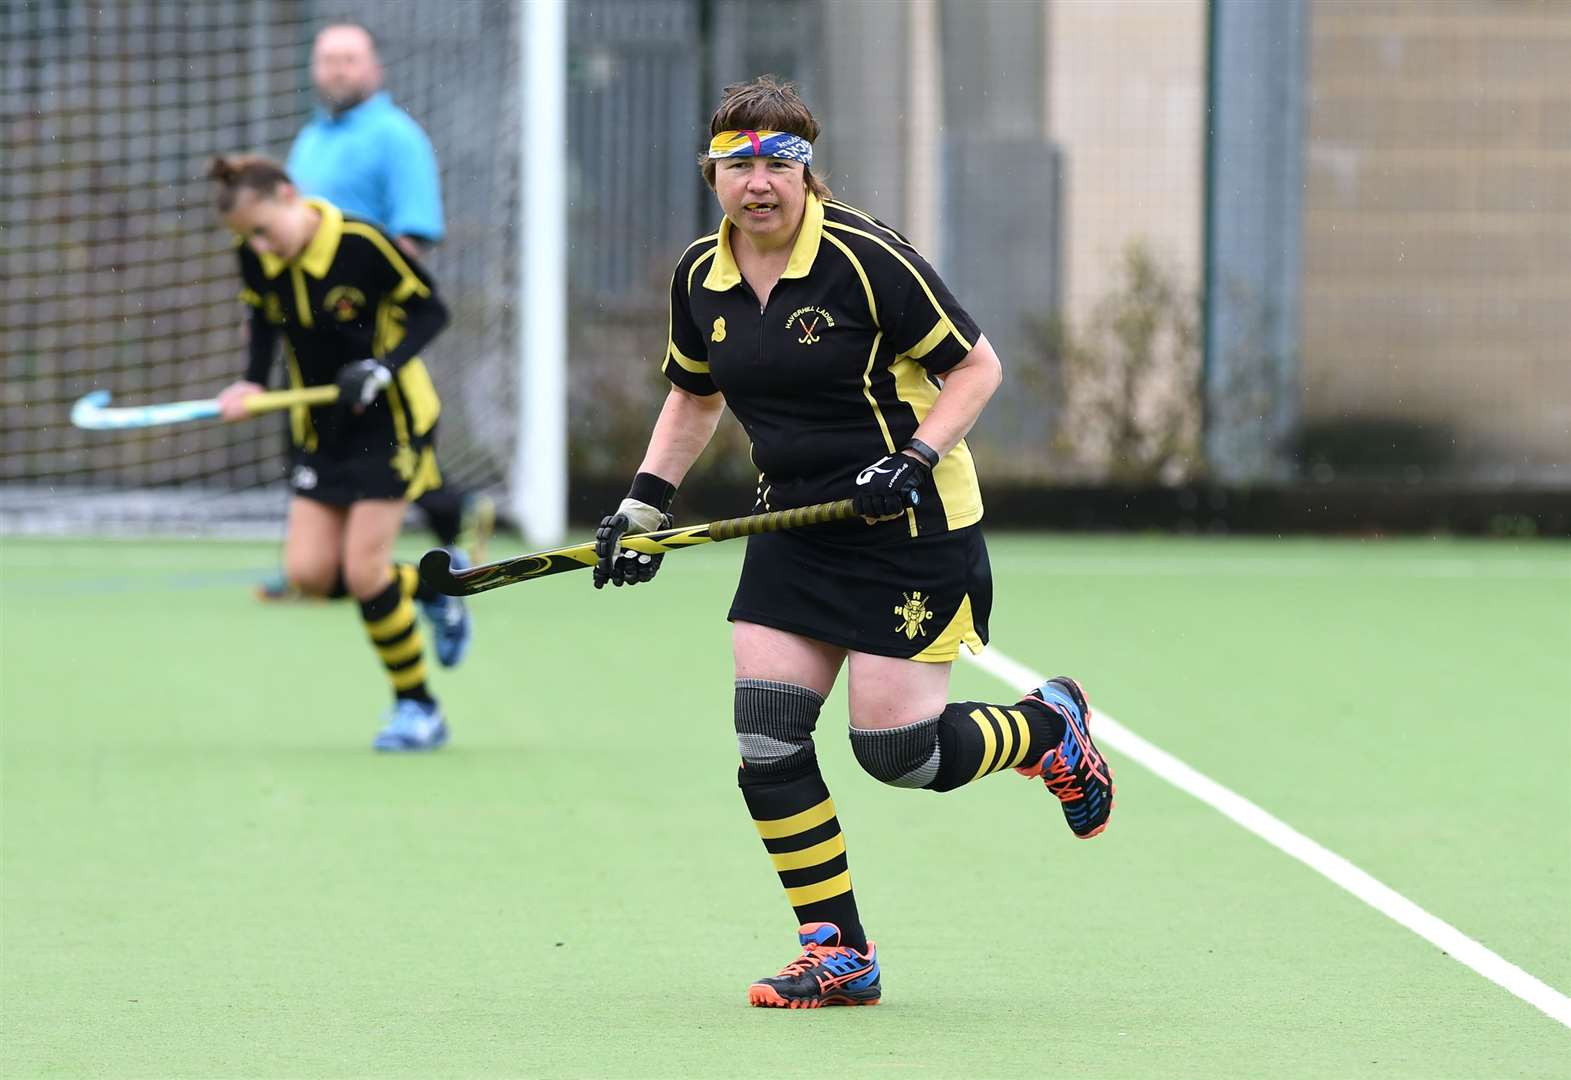 First victory for hockey team in the revamped East League